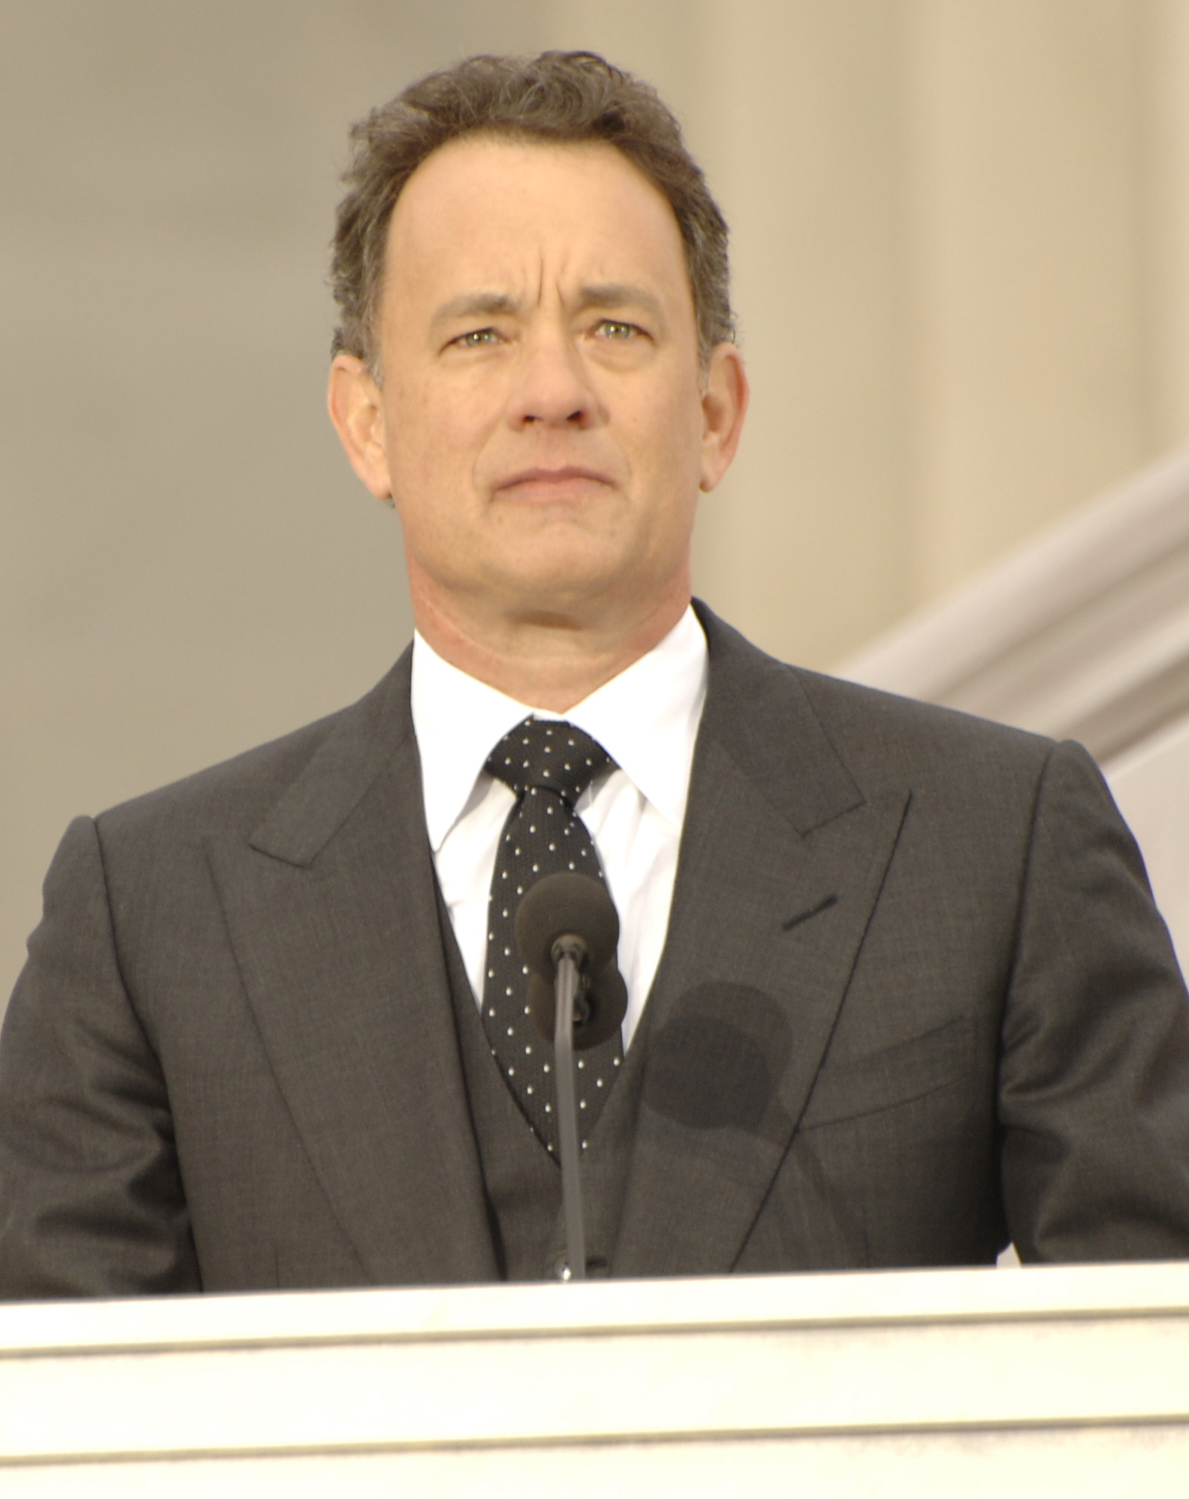 tom hanks imdb